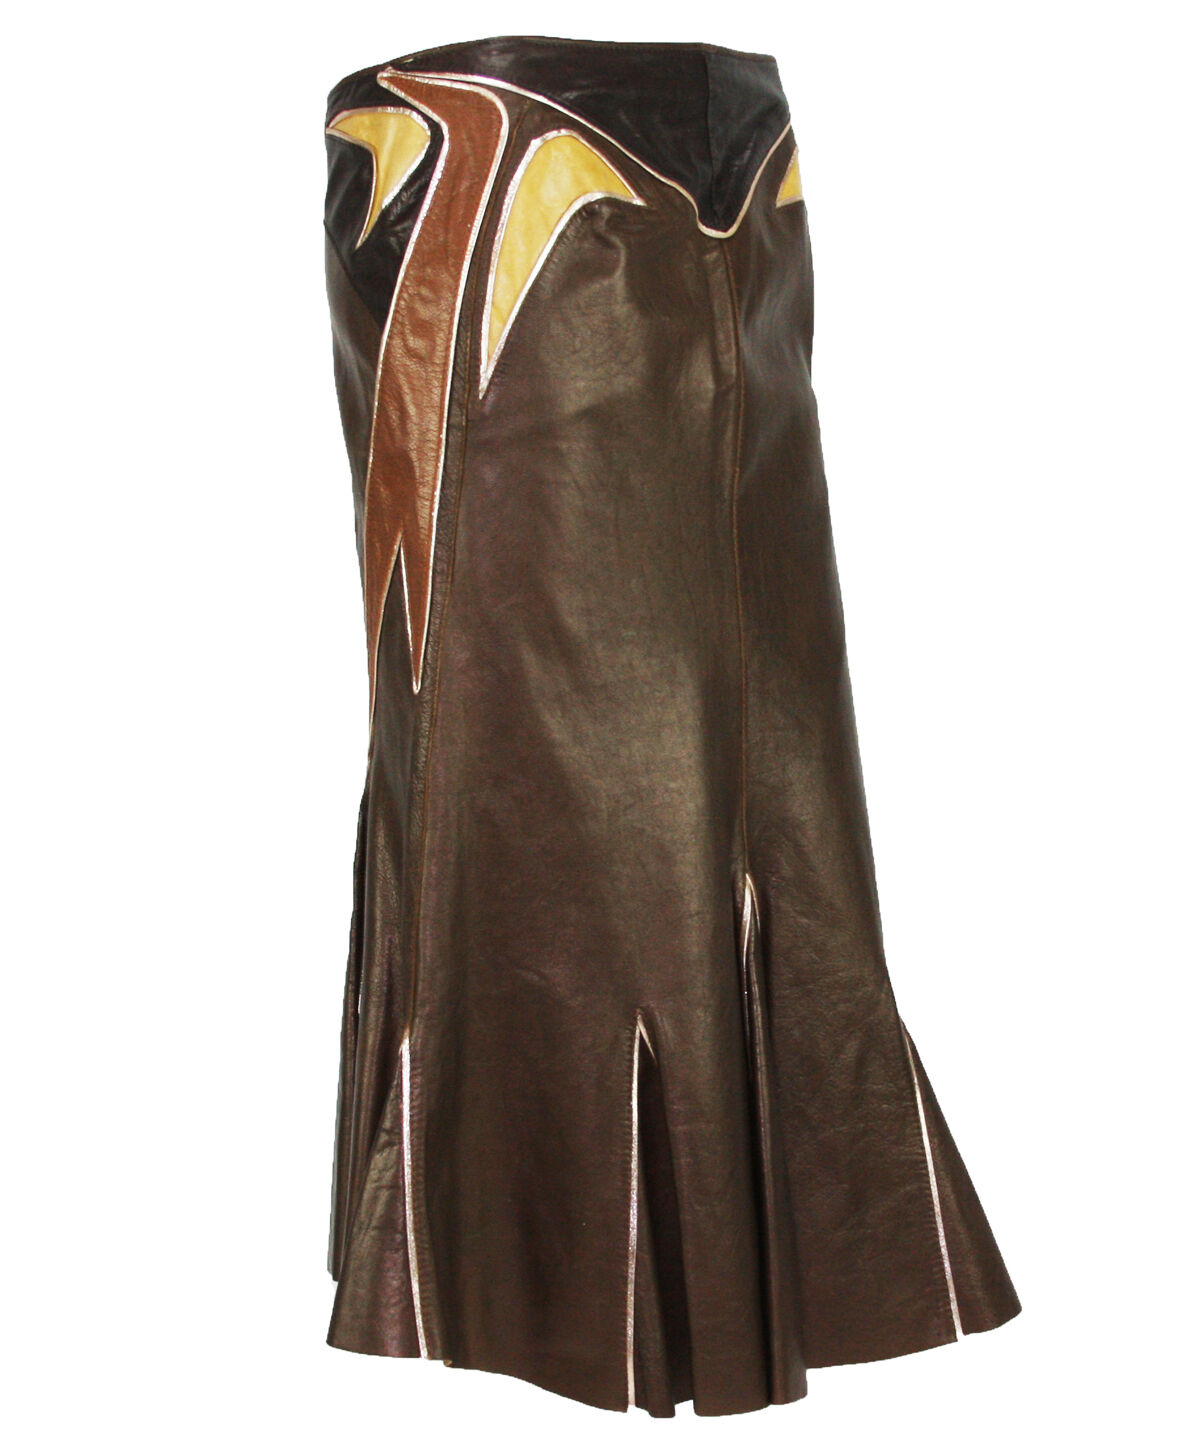 NEW ROBERTO CAVALLI LEATHER LONG SKIRT CHOCOLATE APPLIQUE size S M